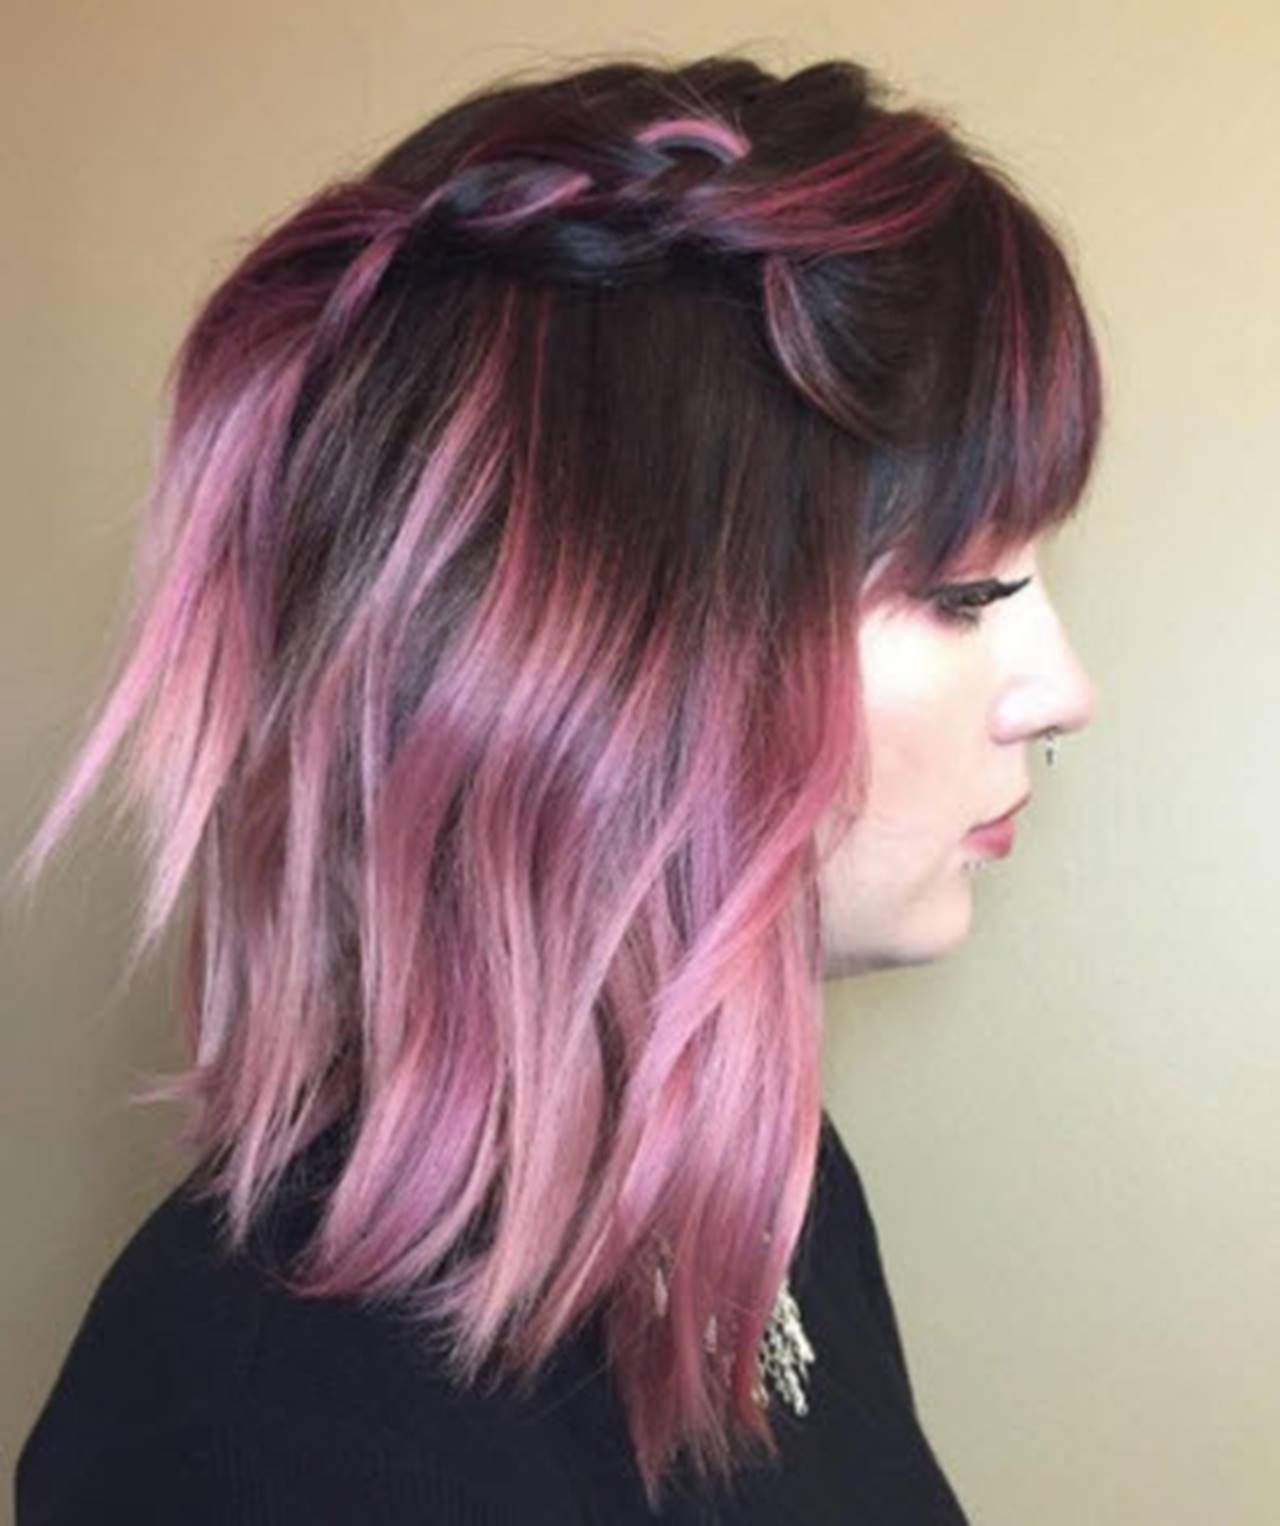 28 Stunning Violet Hair Color Ideas For All Skin Tones Hair Com By L Oreal Hair Color Pink Ombre Hair Color Pink Hair